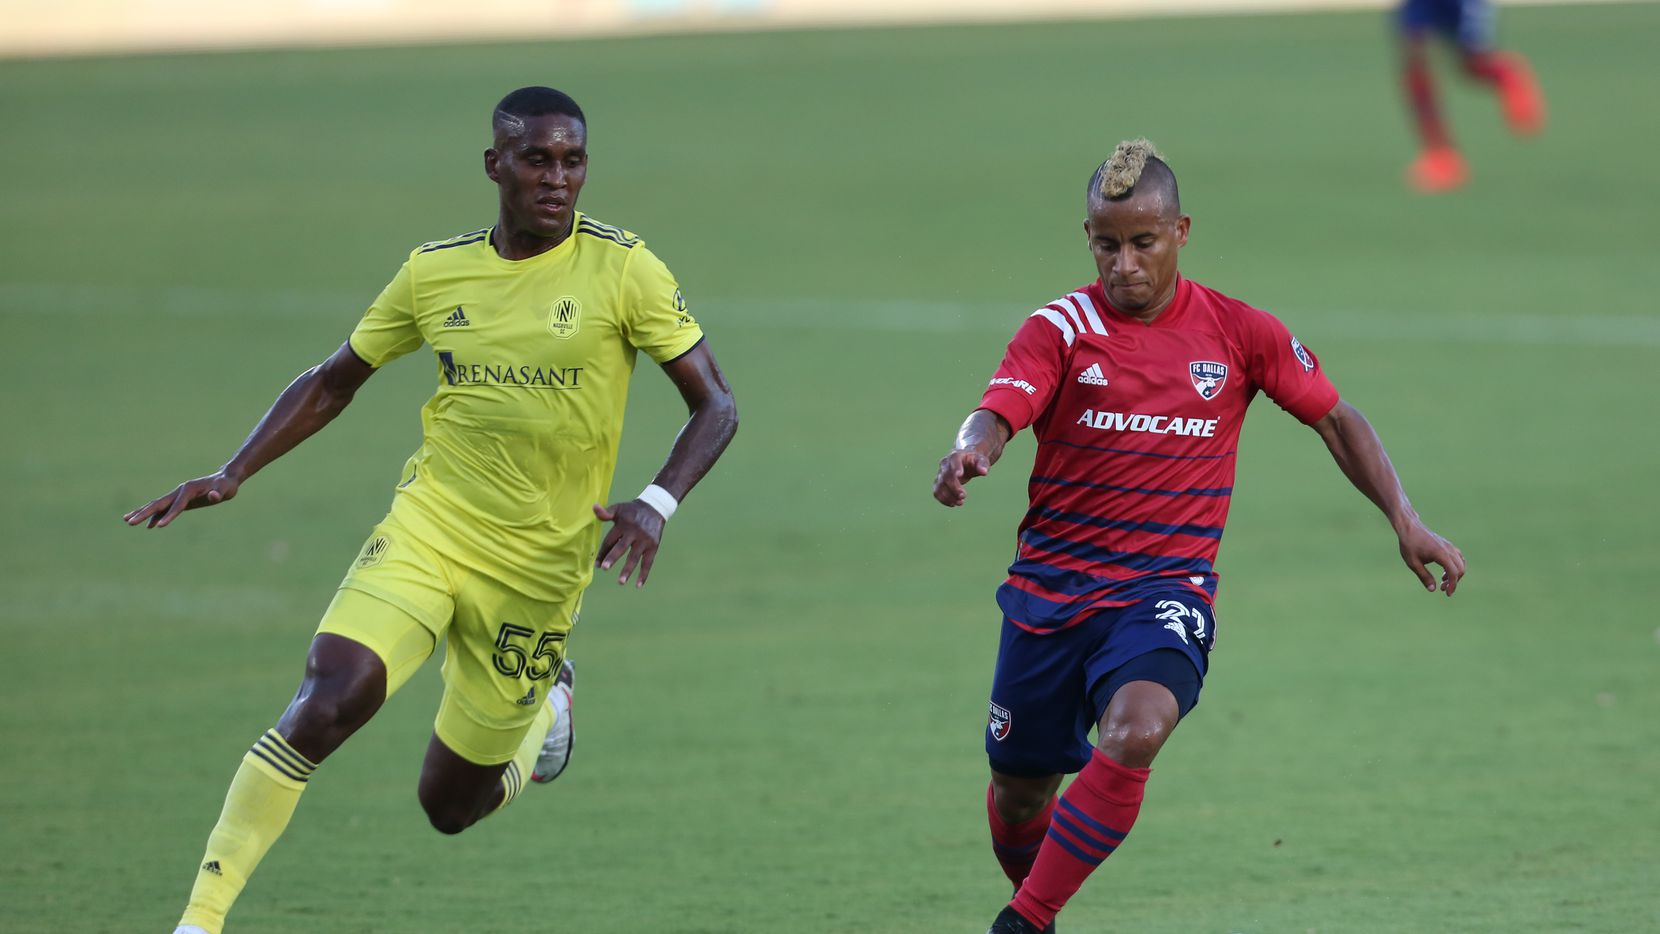 FRISCO, TX - AUGUST 12: Midfielder of FC Dallas Michael Barrios #21 fight the ball during a game between FC Dallas and Nashville SC at Toyota Stadium in Frisco, Texas. (Photo by Omar Vega / Al Dia)